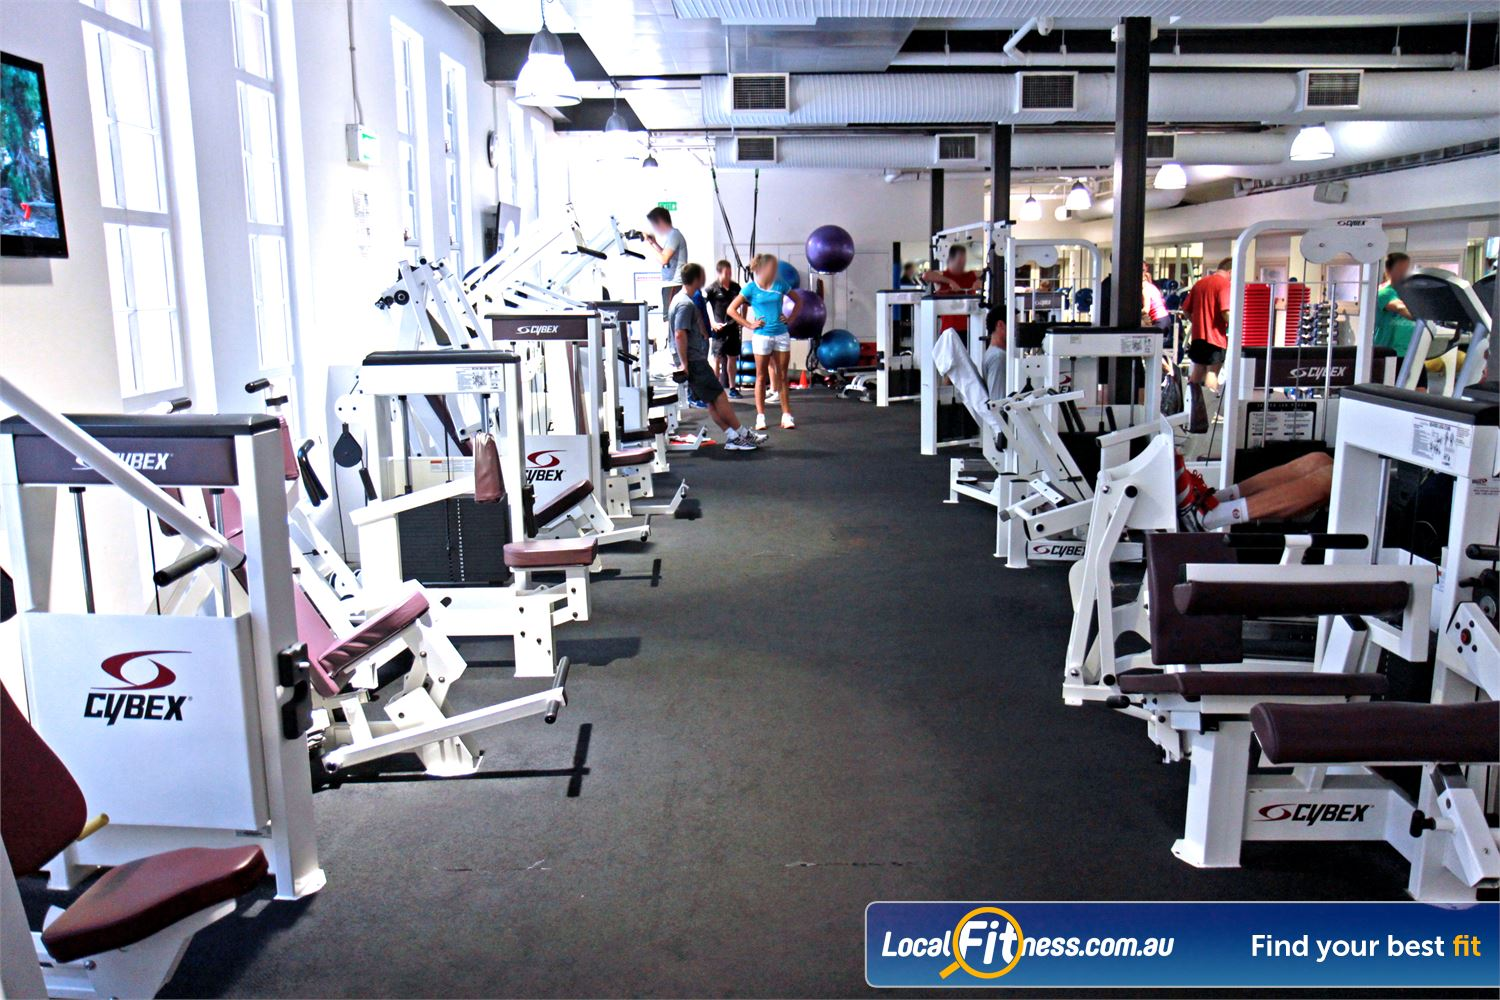 Goodlife Health Clubs Martin Place Sydney Our exclusive Sydney gym caters for the busy executive in the Sydney CBD.